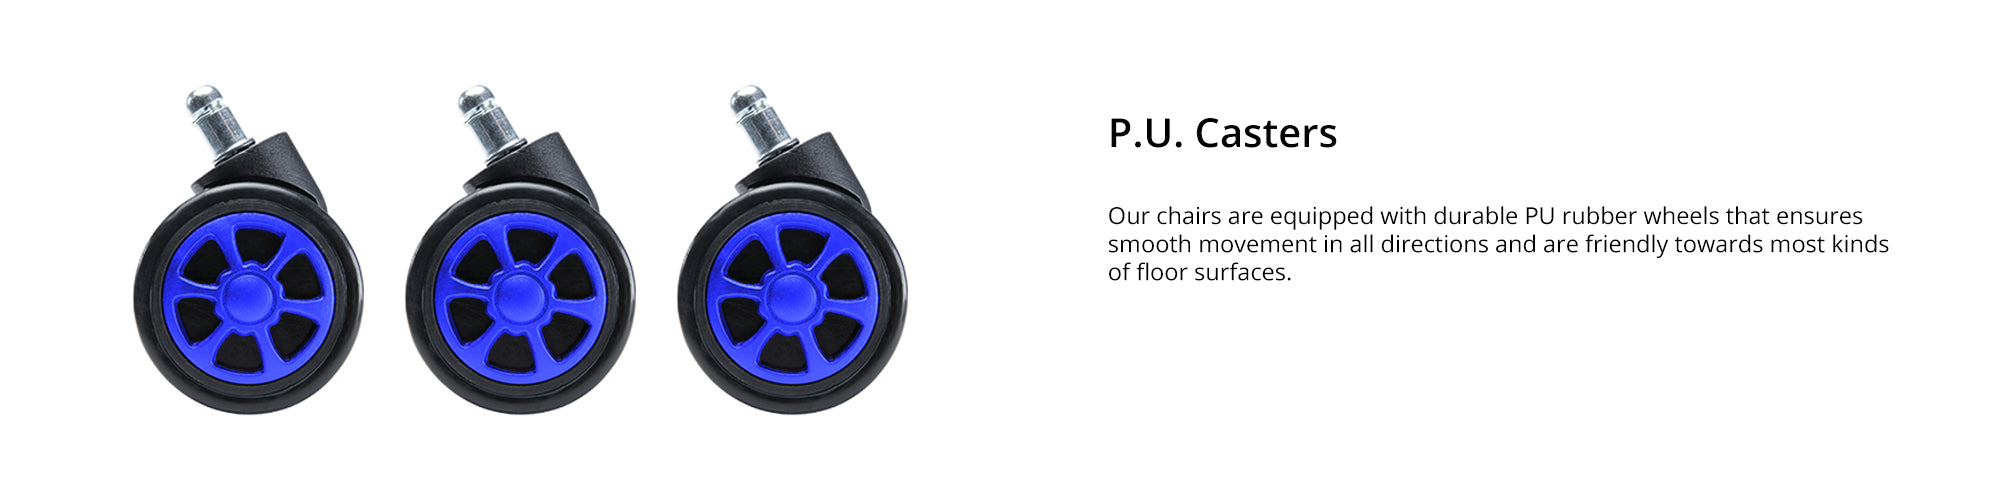 Features (p.u.casters )